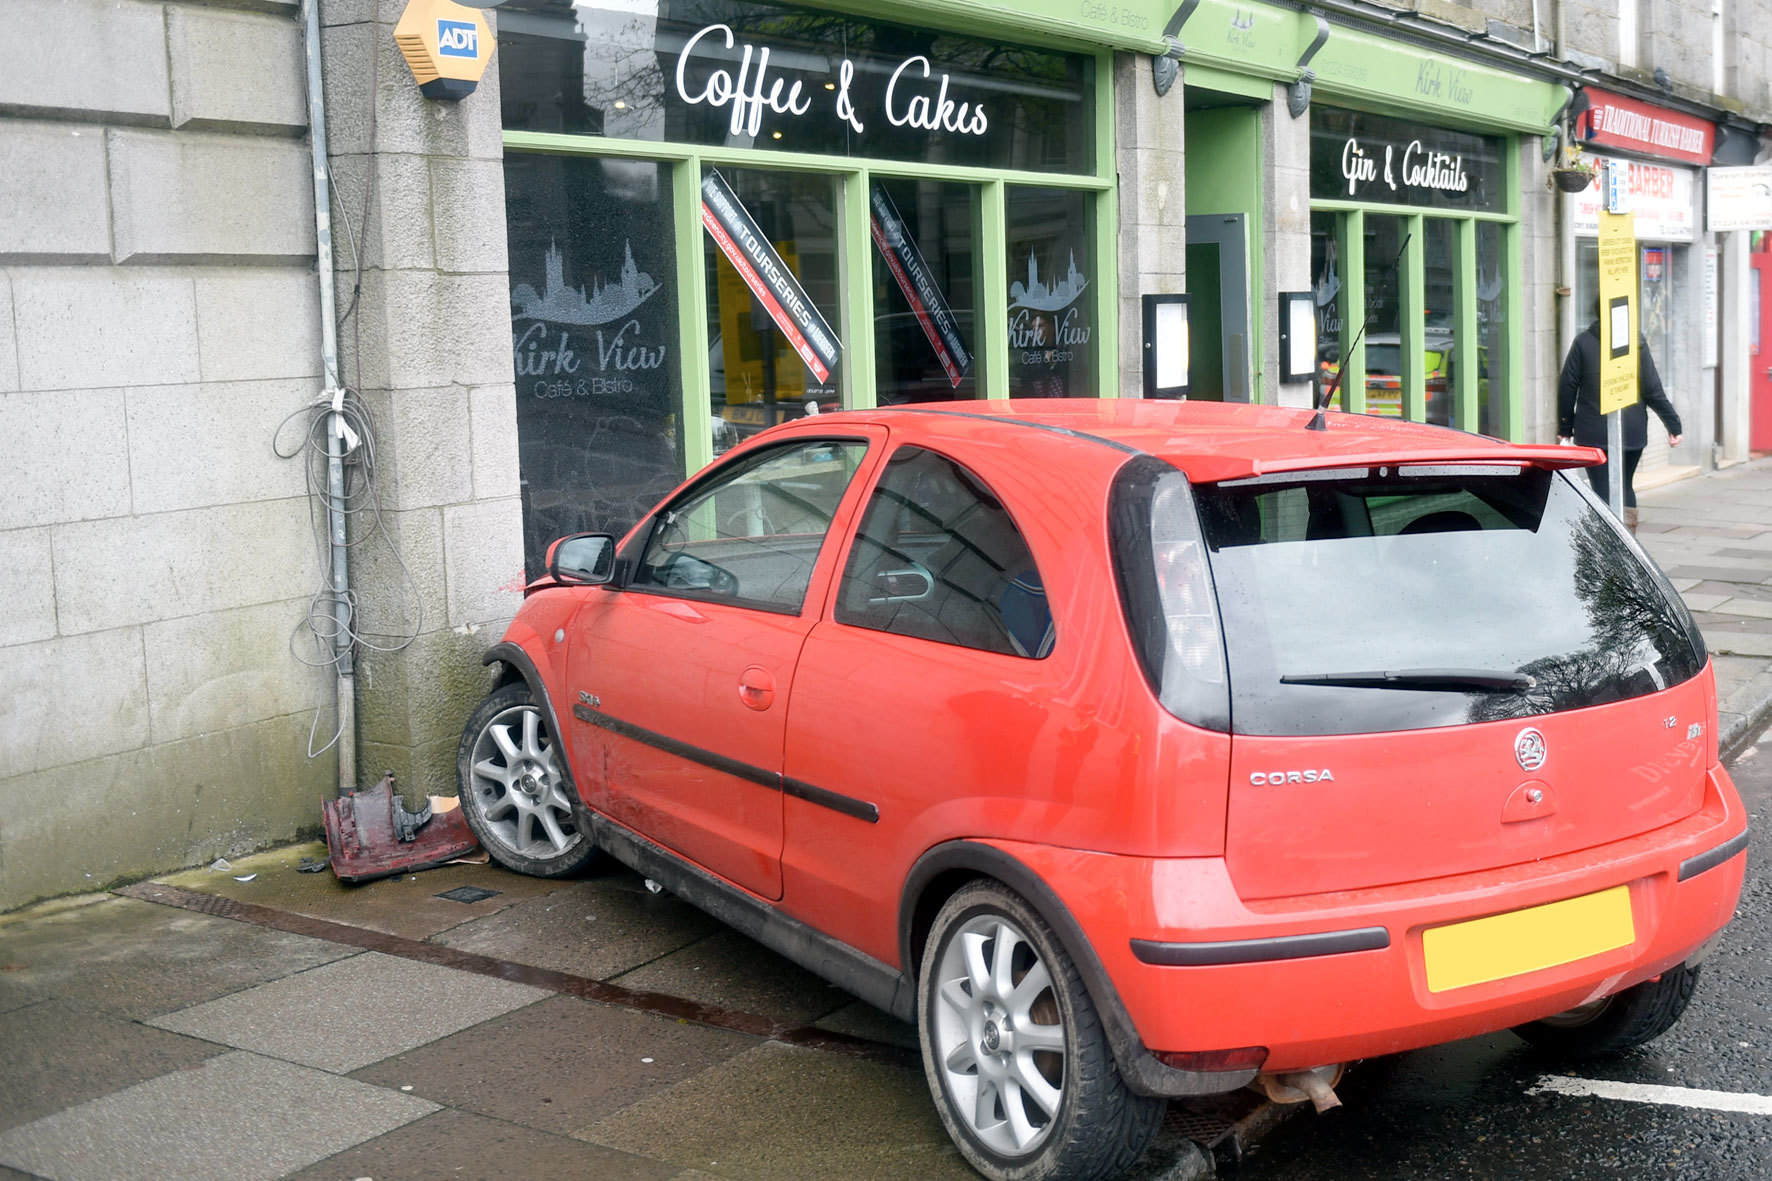 The accident took place outside the Kirk View Cafe on Union Terrace